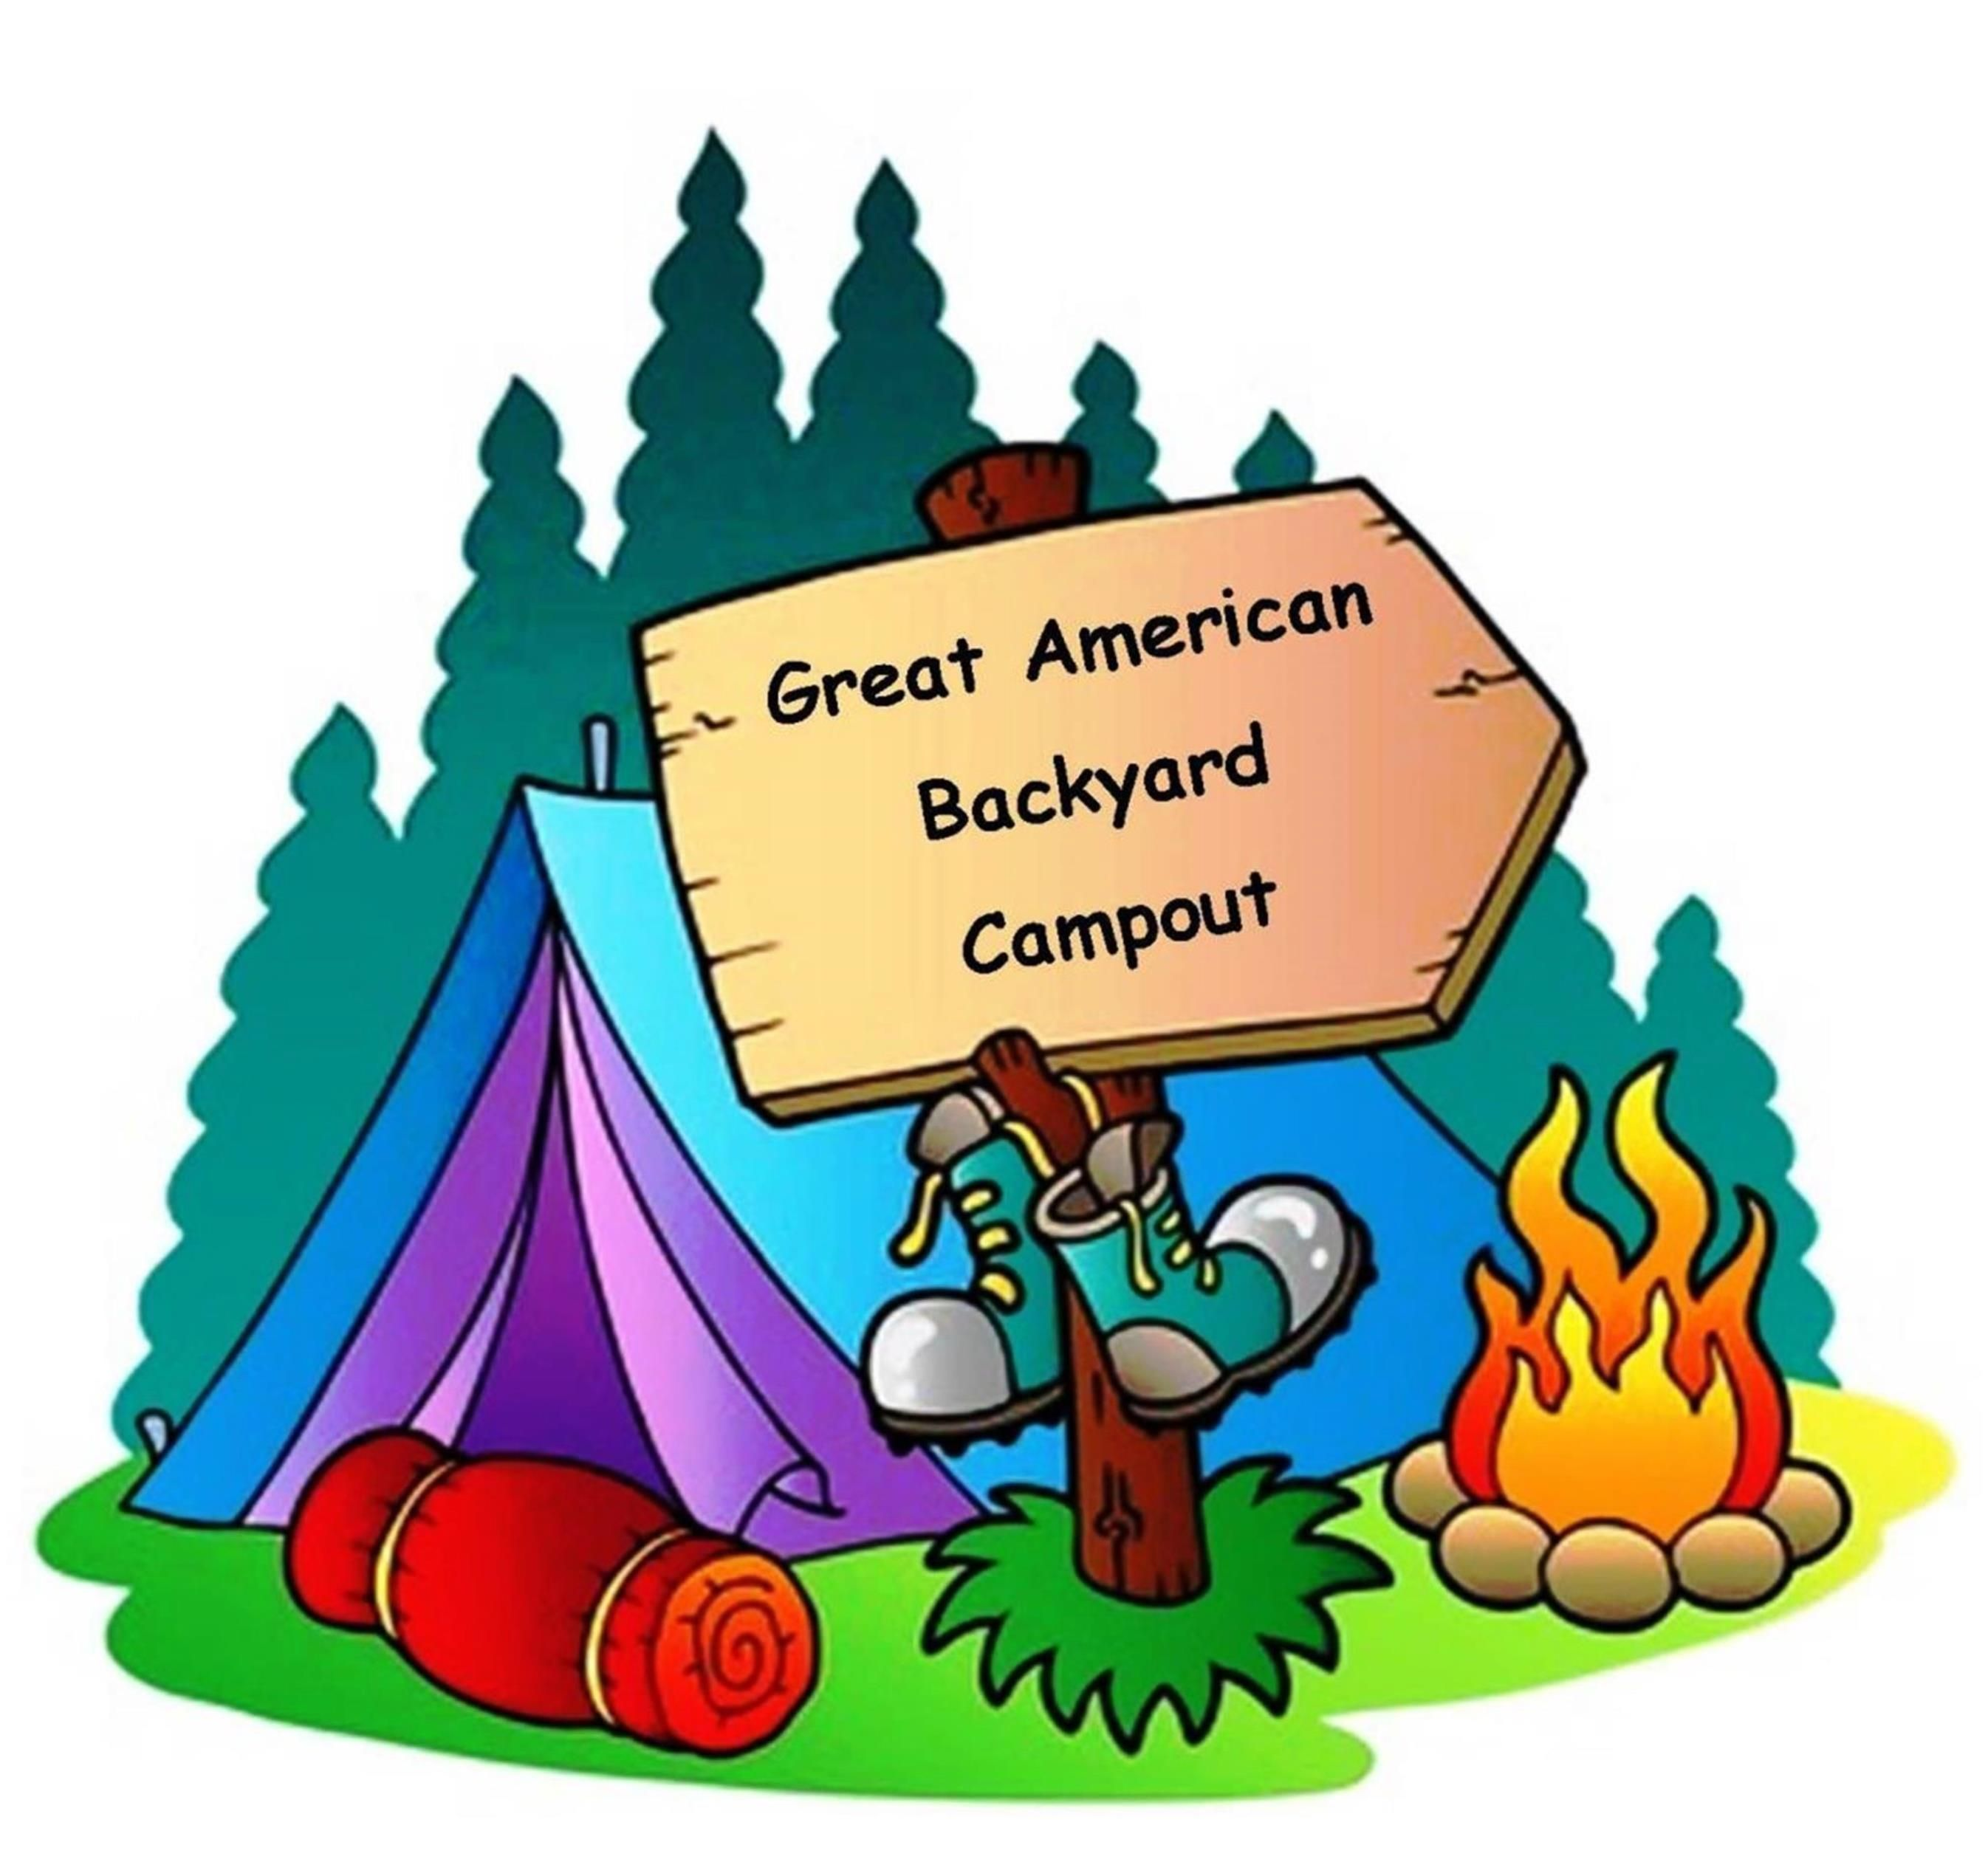 Camping clipart backyard camping. Great american campout to